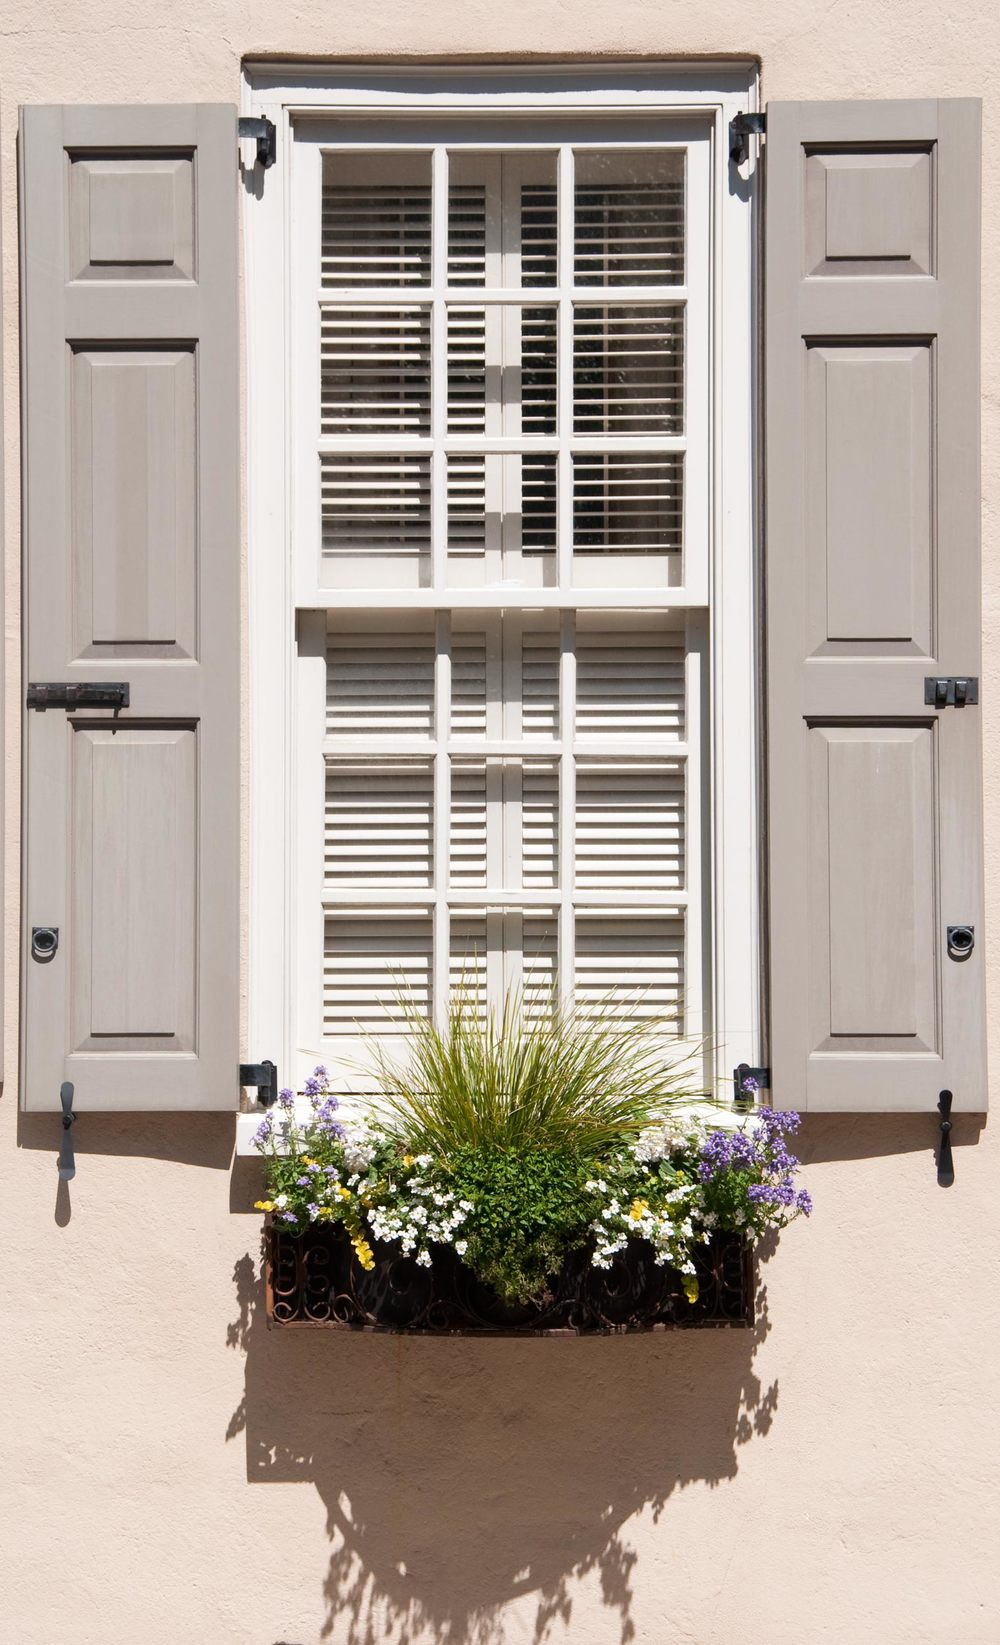 Exterior view of window with shutter.jpg